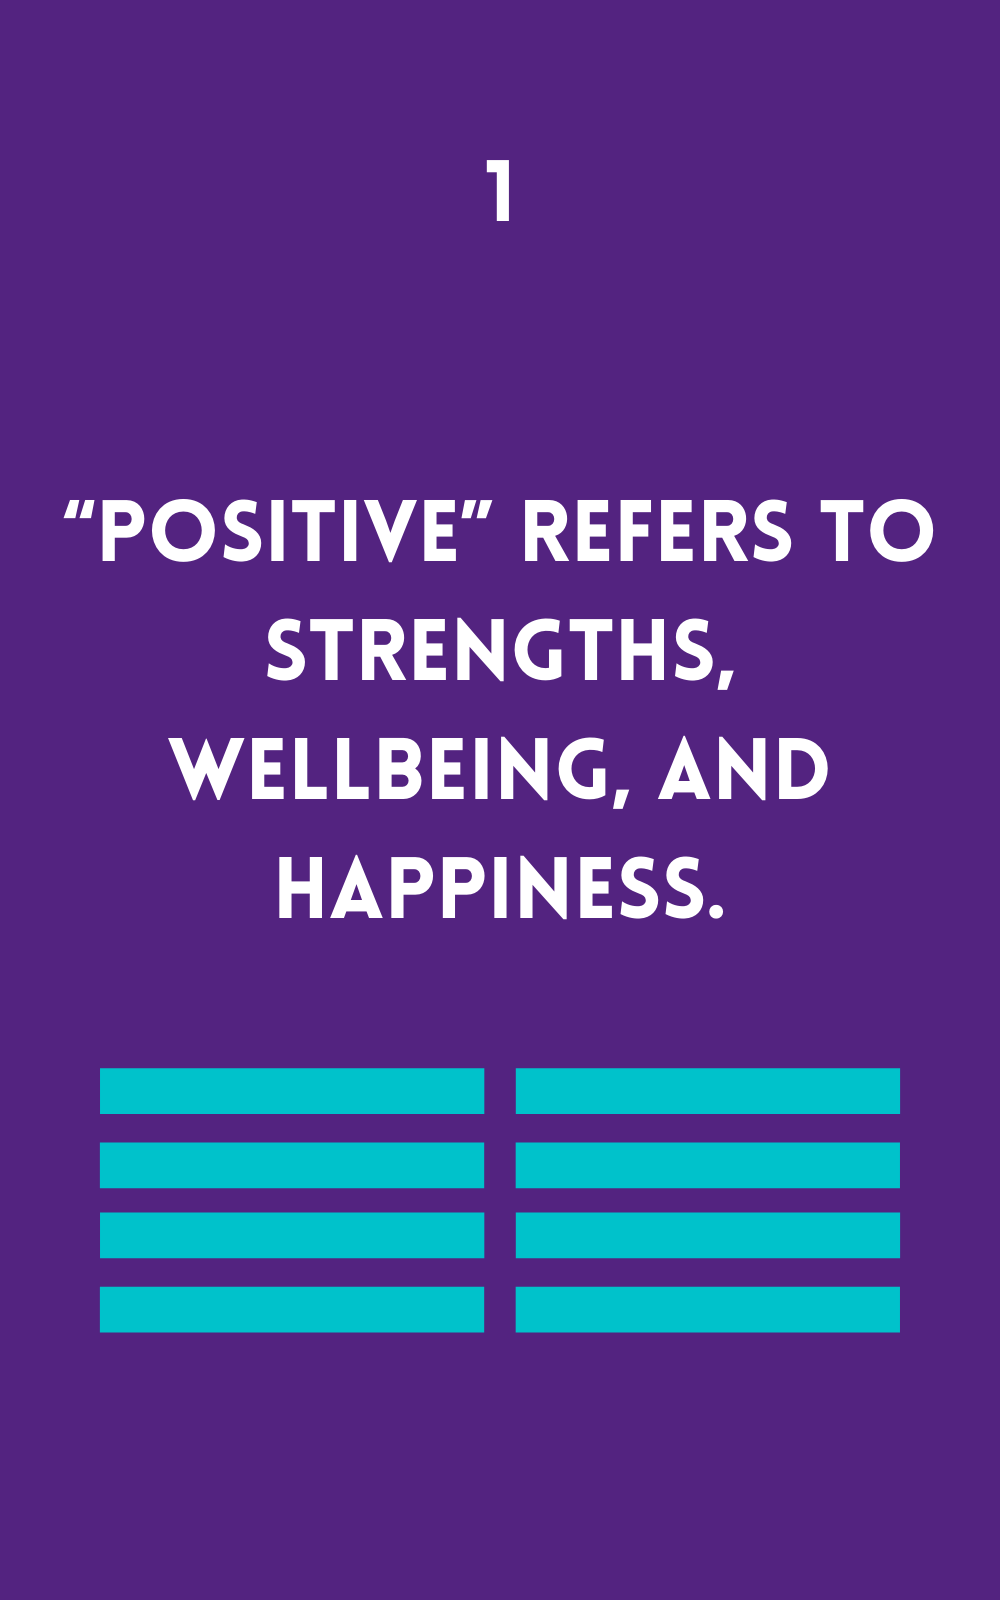 Positive refers to strengths wellbeing and happiness